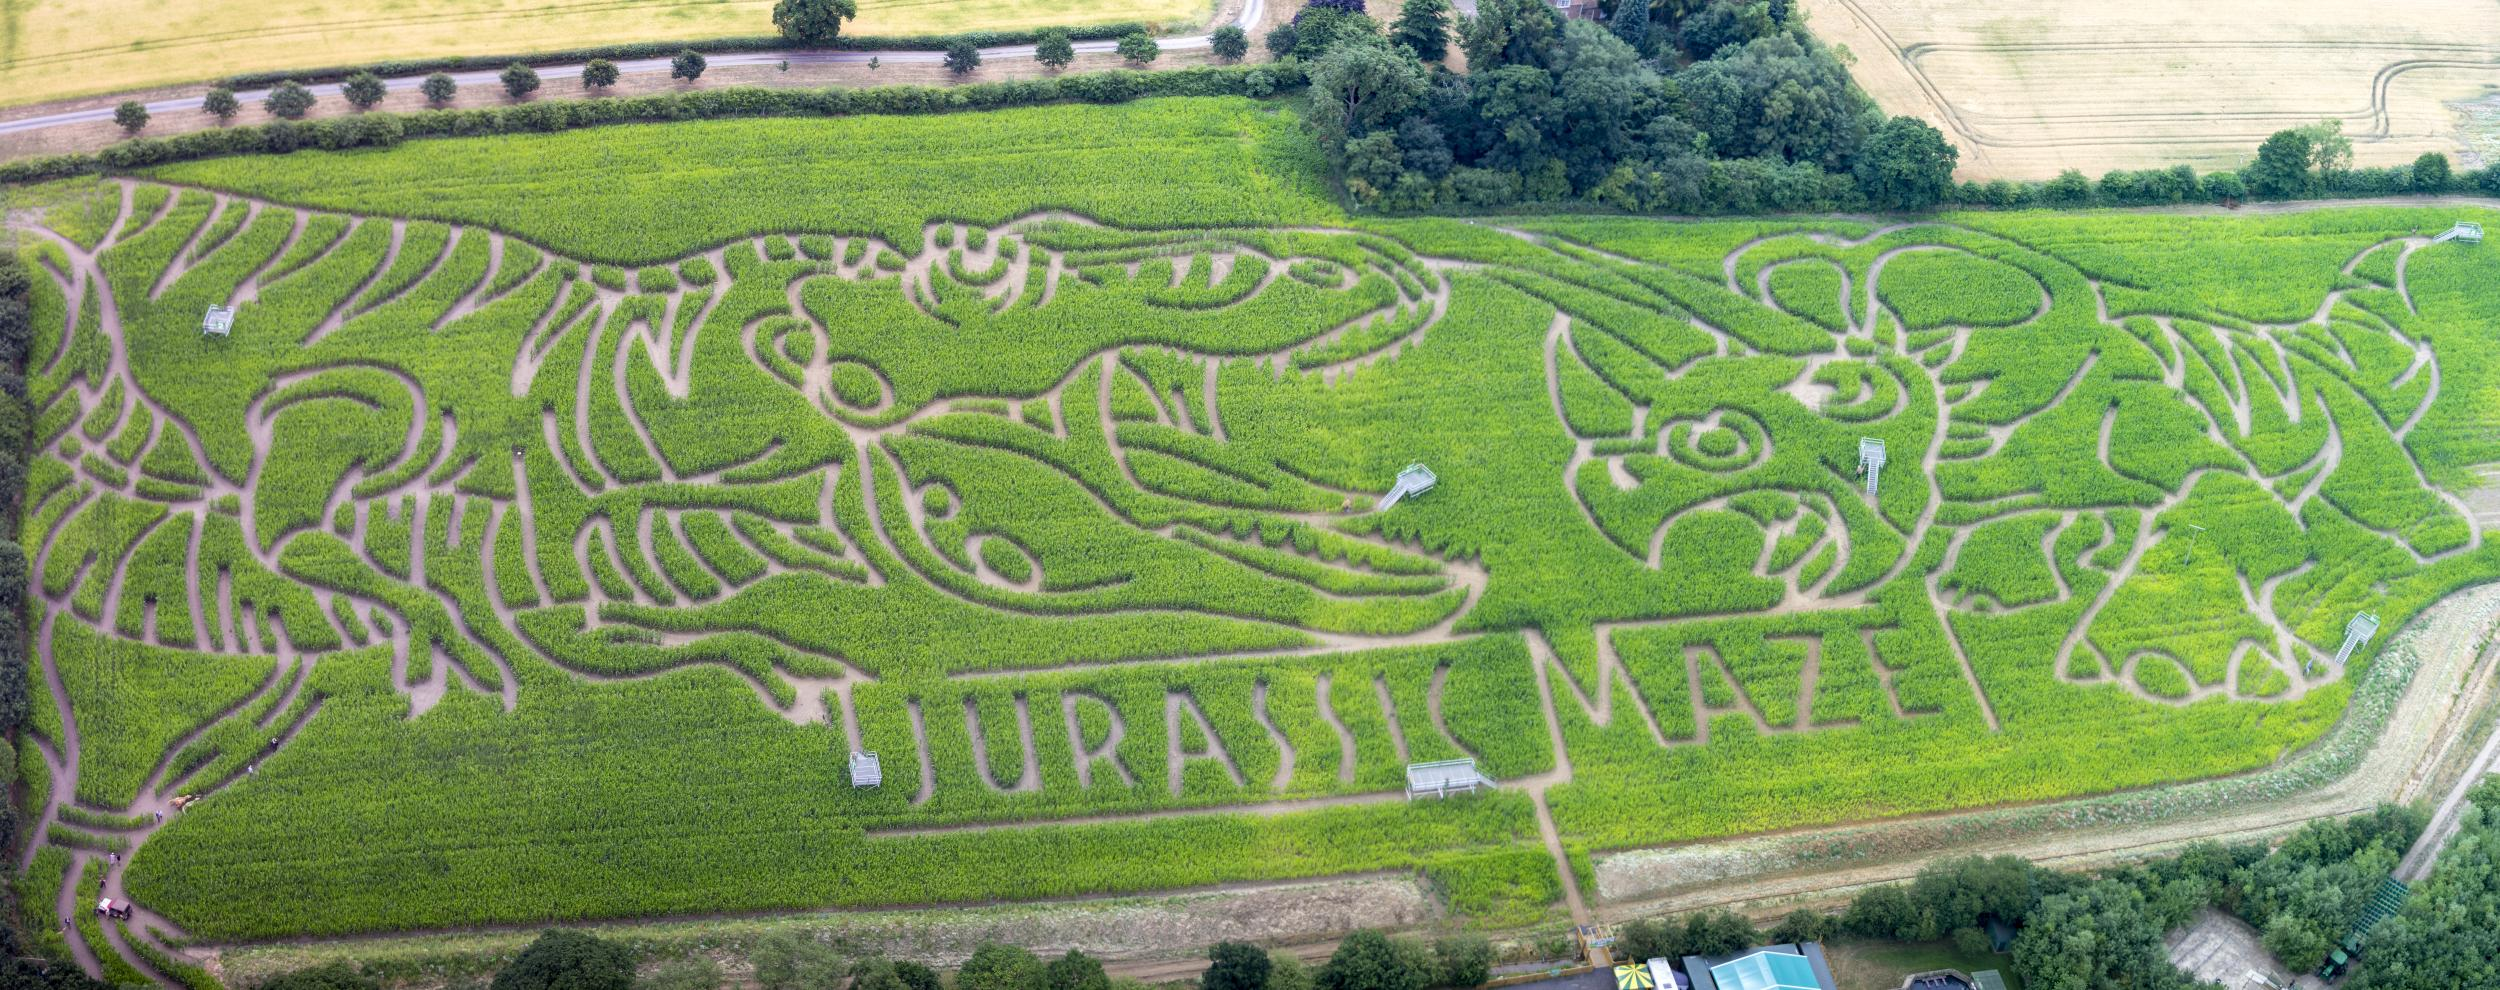 York Maze Aerial Photography